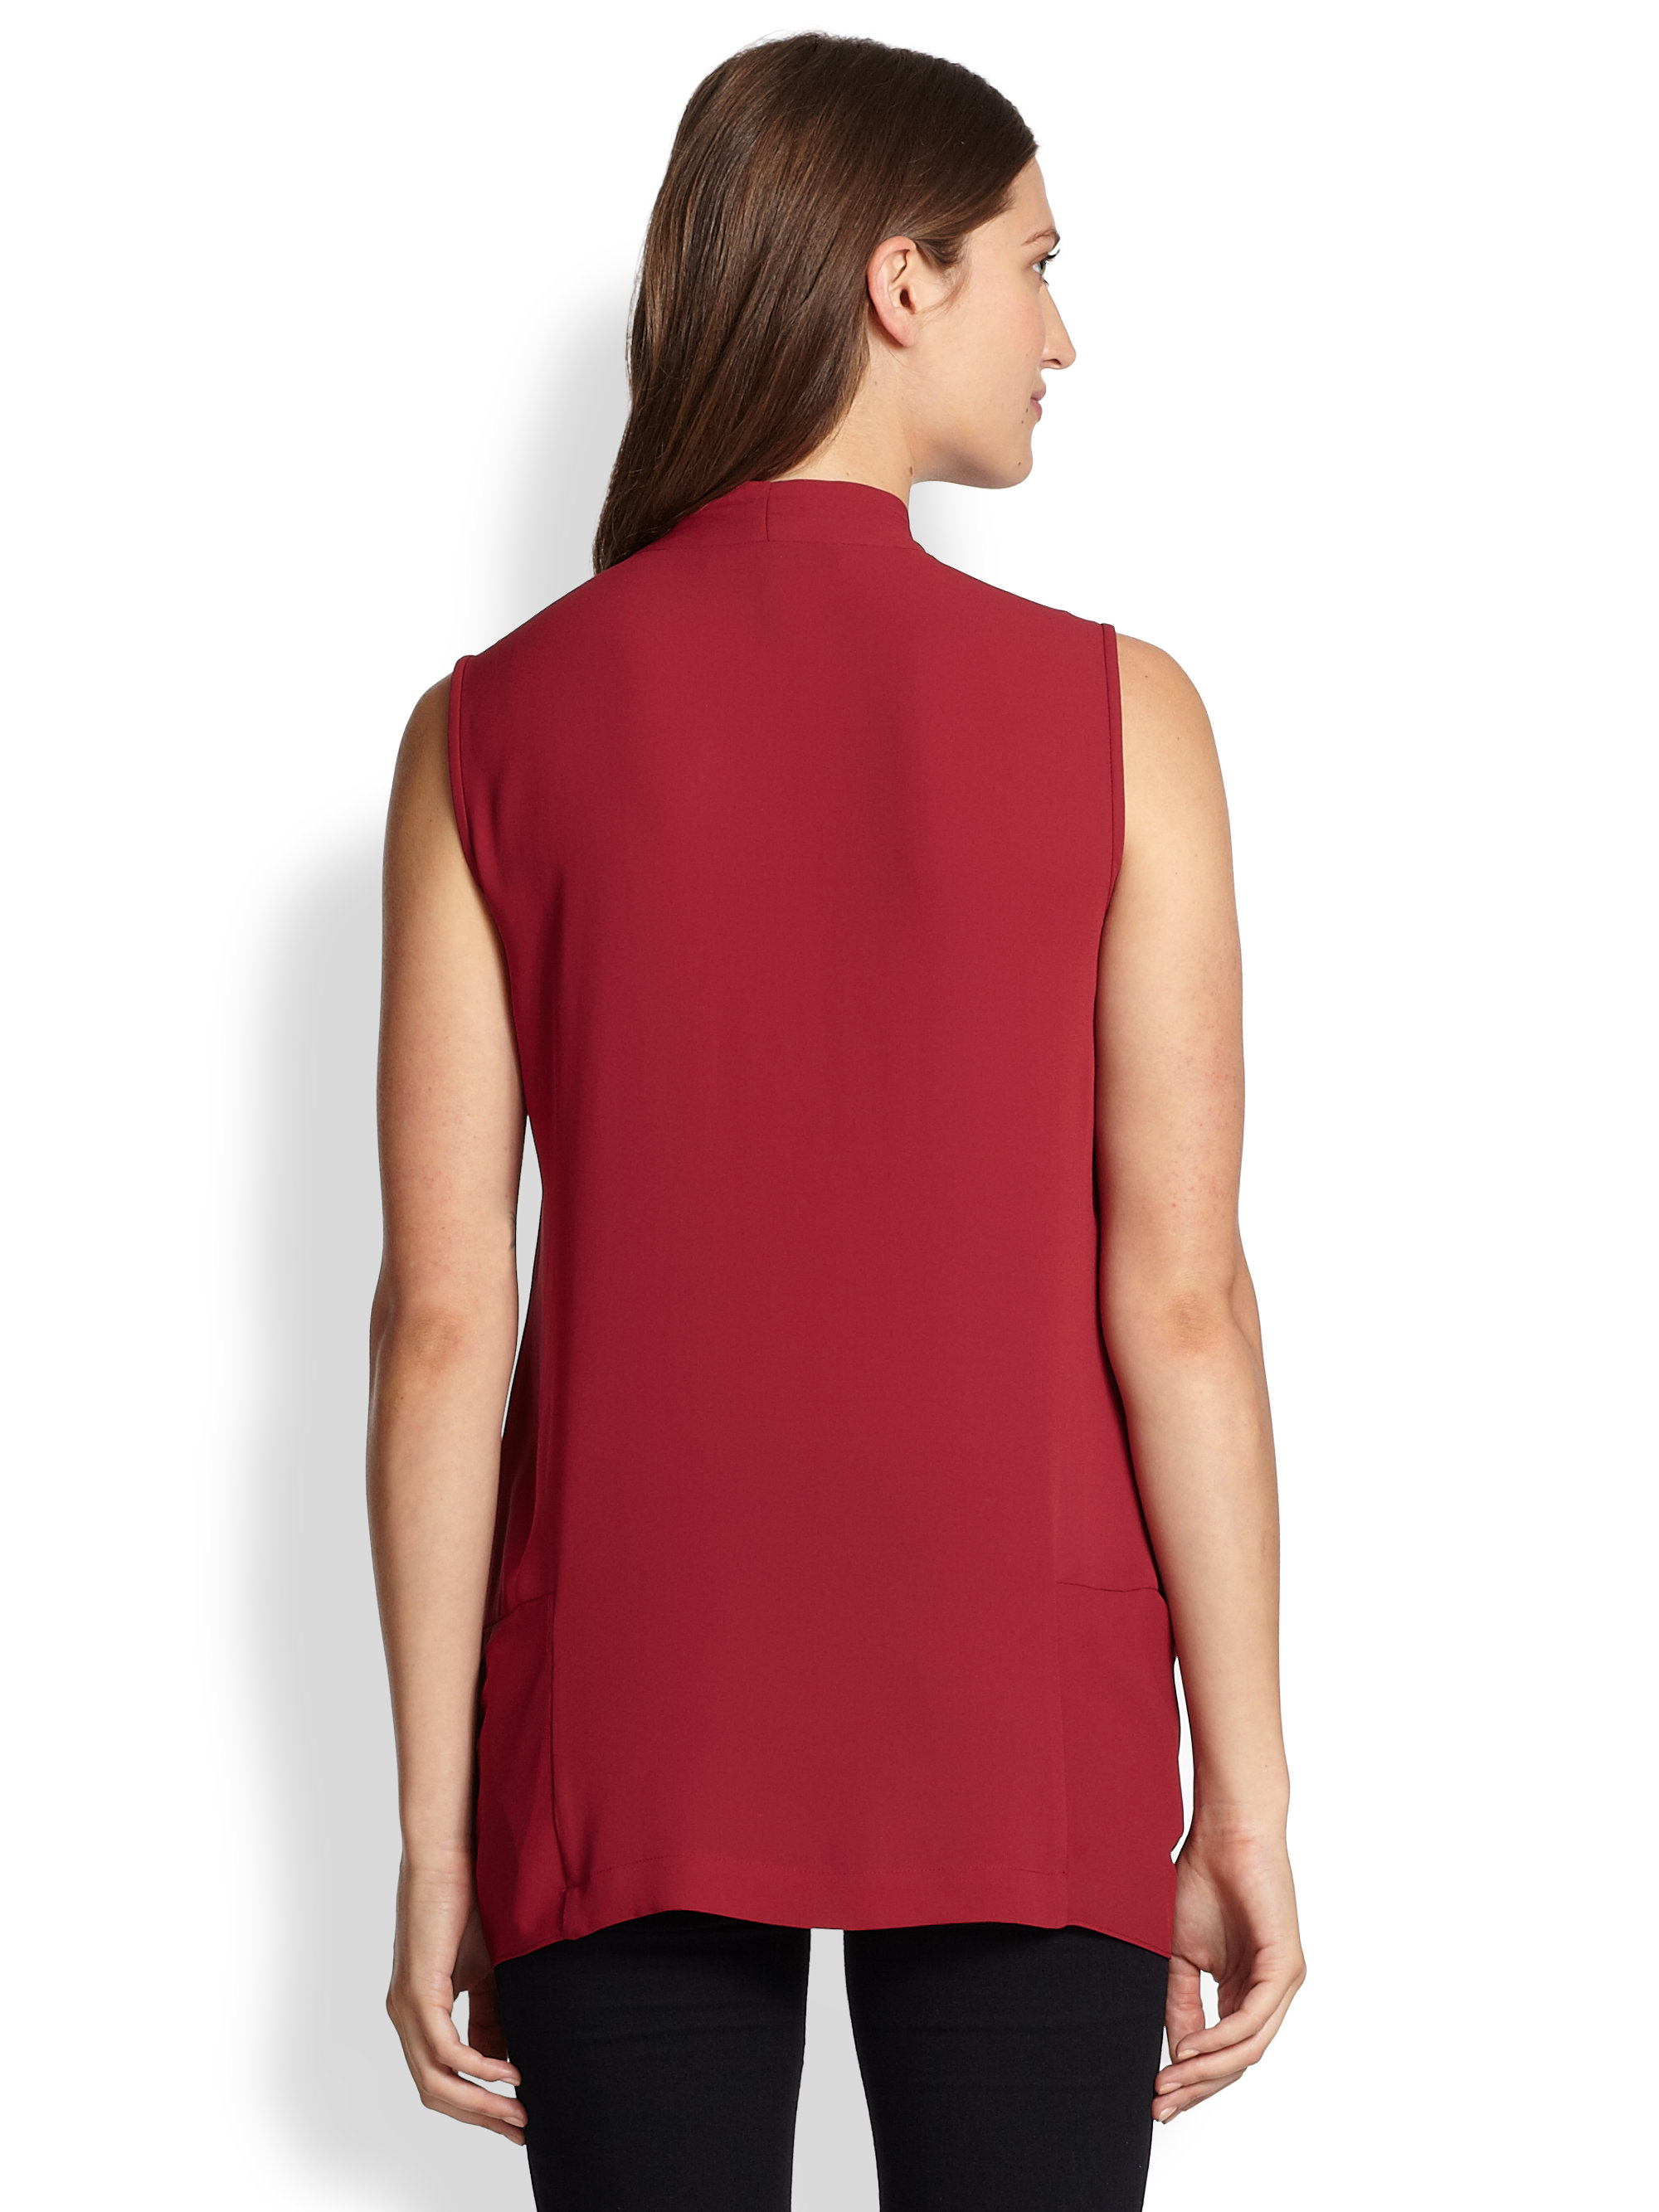 products enlarged drapes miu realreal women clothing draped top sleeveless the tops